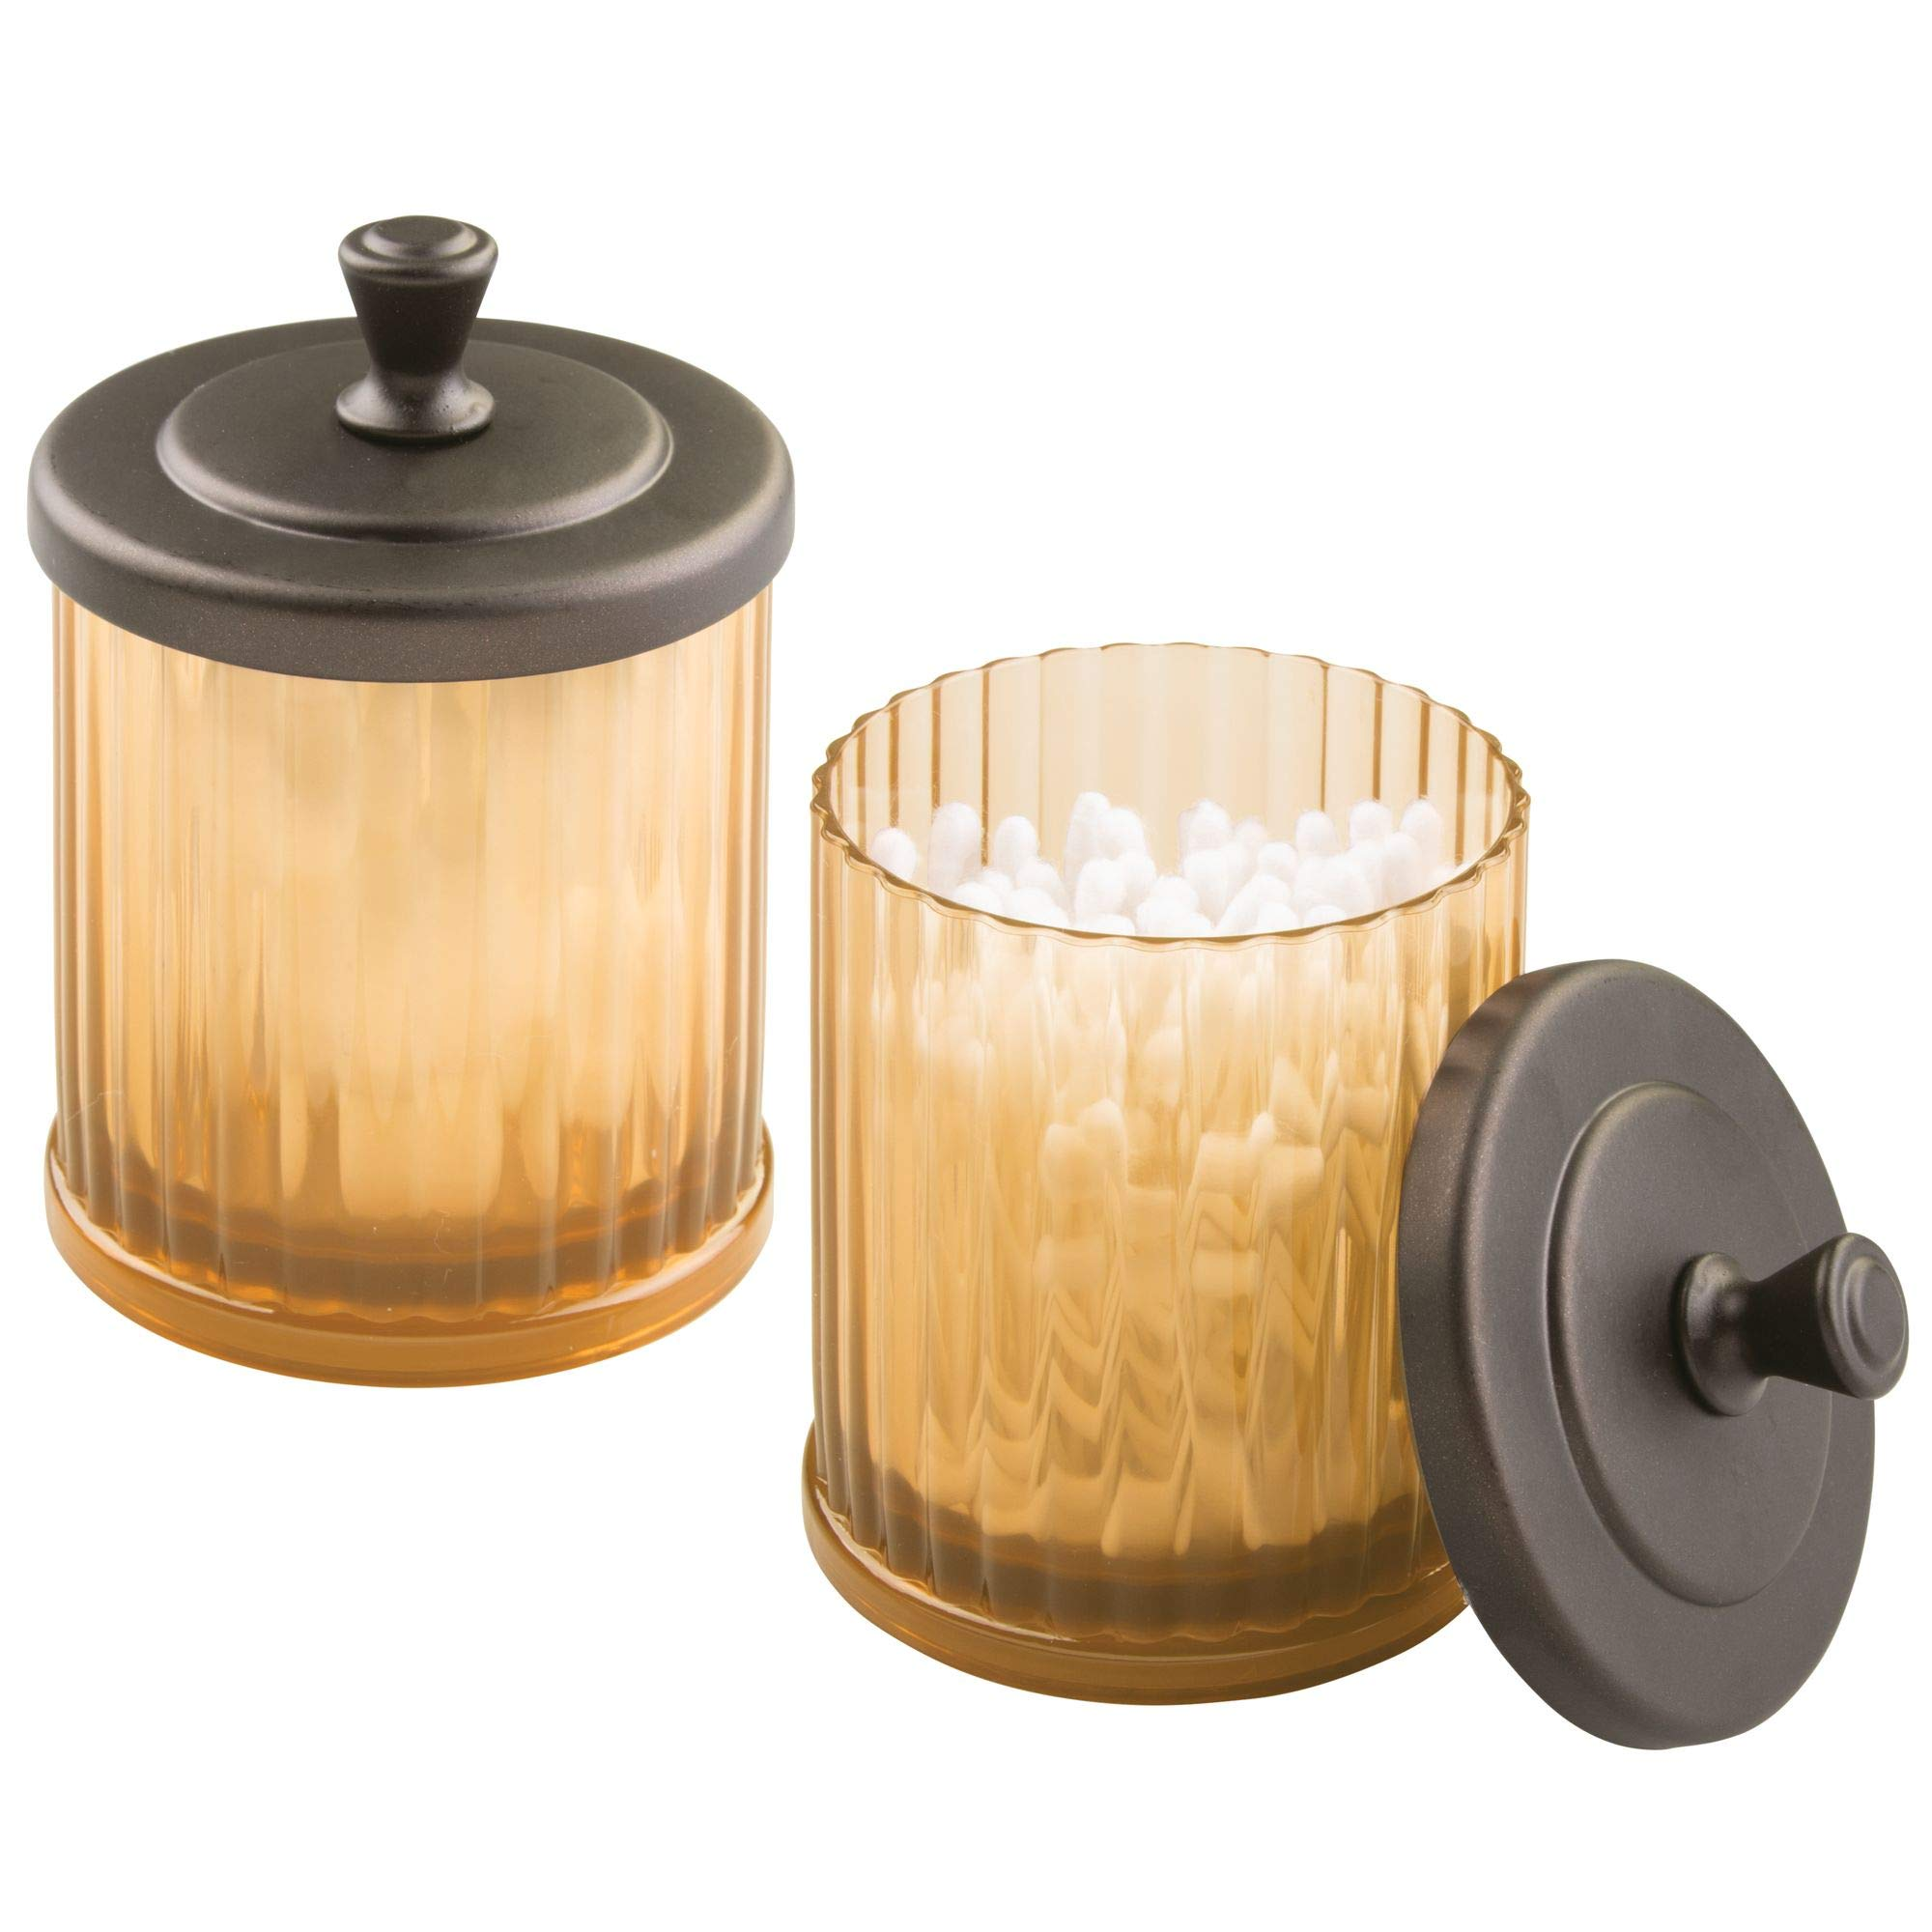 mDesign Fluted Bathroom Vanity Storage Organizer Canister Apothecary Jars for Cotton Swabs, Rounds, Balls, Makeup Sponges, Beauty Blenders, Bath Salts - Pack of 2, Amber/Brown with Bronze Finish Lid by mDesign